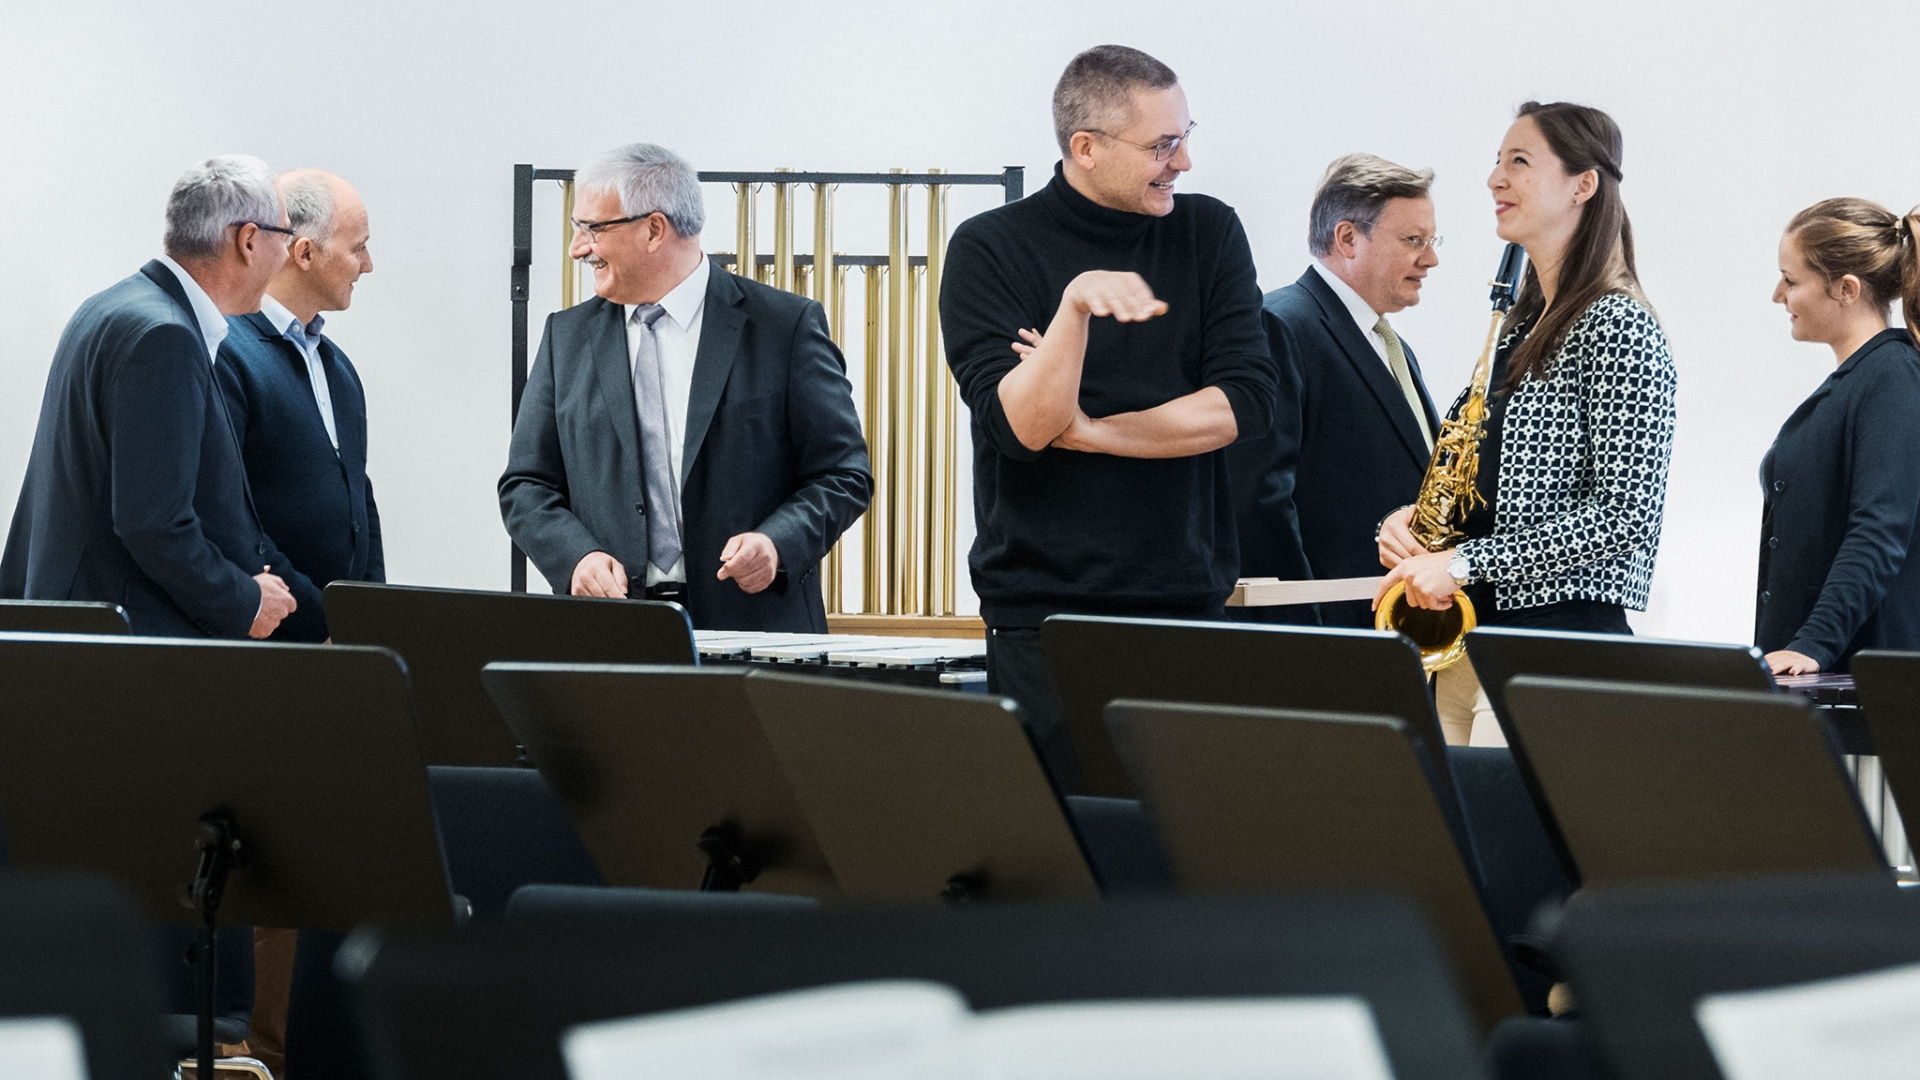 The Audi Philharmonic Wind Orchestra's rehearsal room: Audi Board Members Alexander Seitz and Wendelin Göbel along with Stefan Kühl and Holger Eckstein in dialogue with musicians.